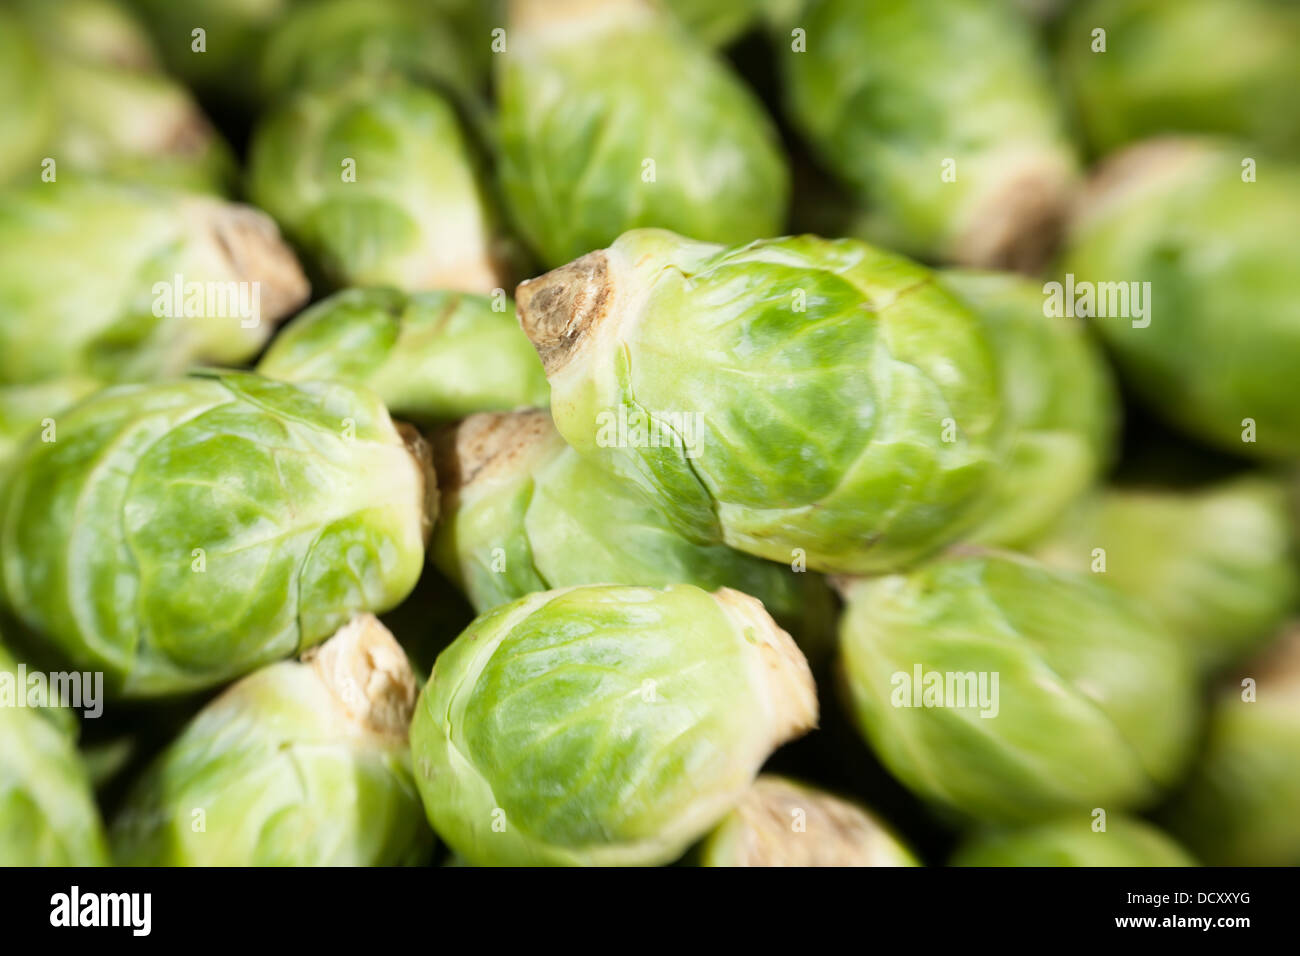 brussels sprouts many closeup macro blurry - Stock Image